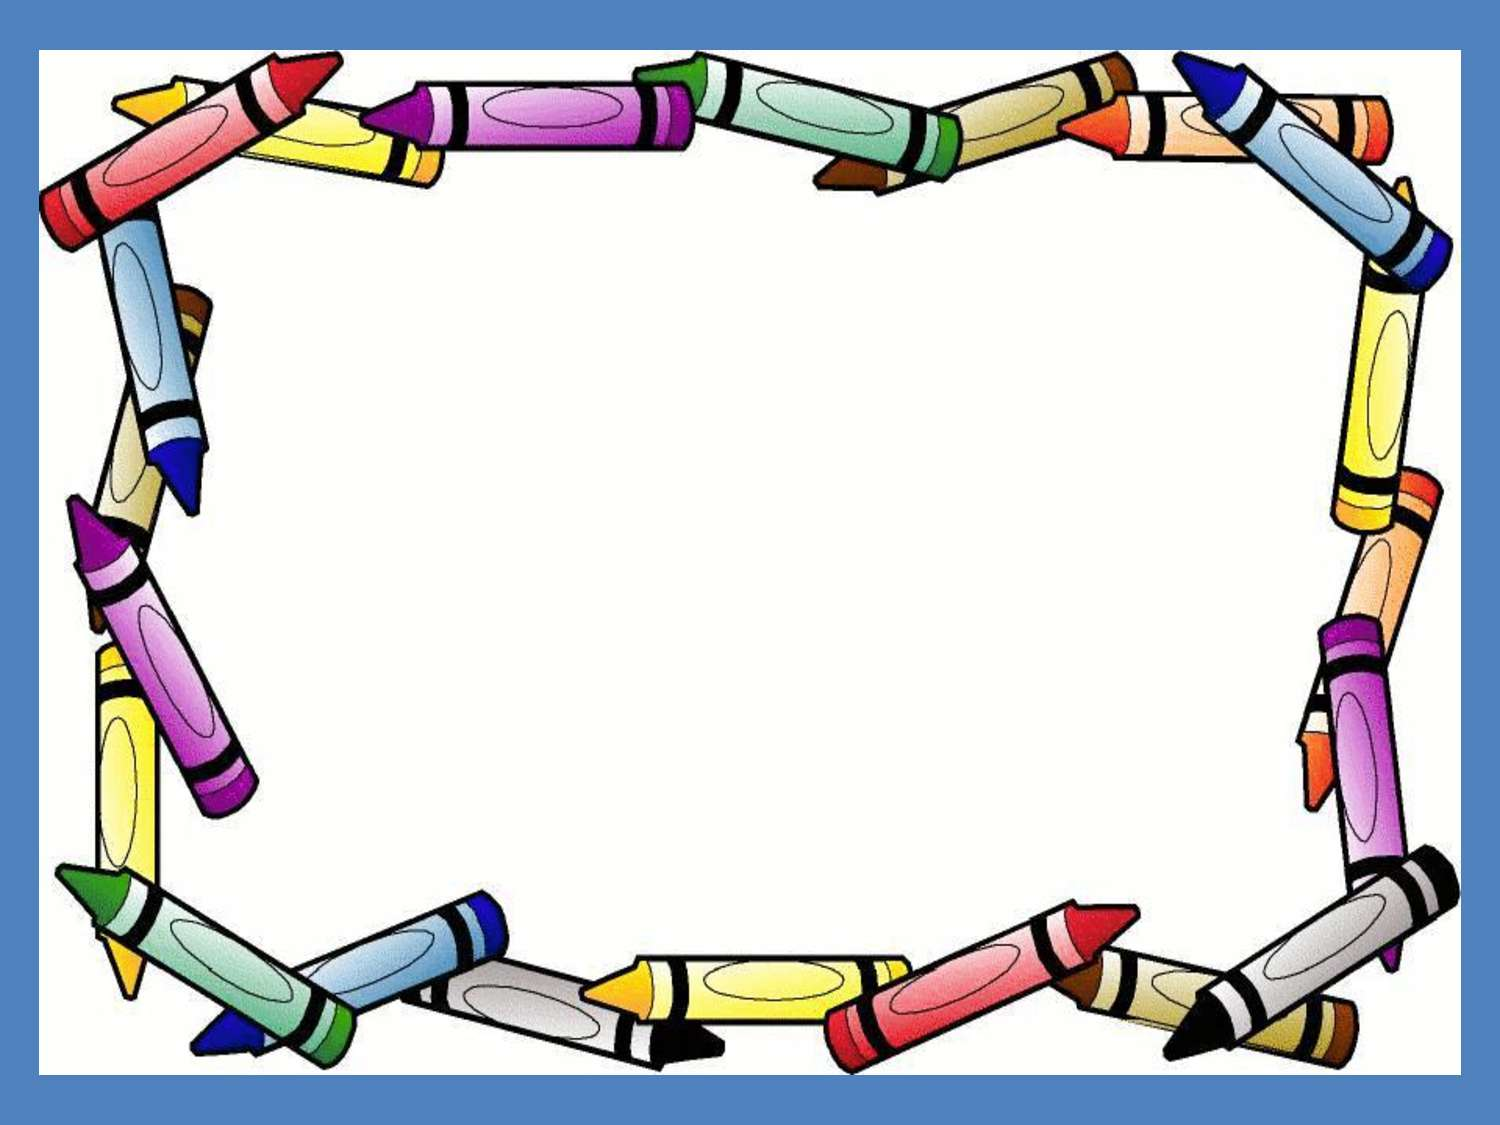 Bingkai Frame Crayon Border Frame Free PPT Backgrounds for your PowerPoint Templates 1500x1125